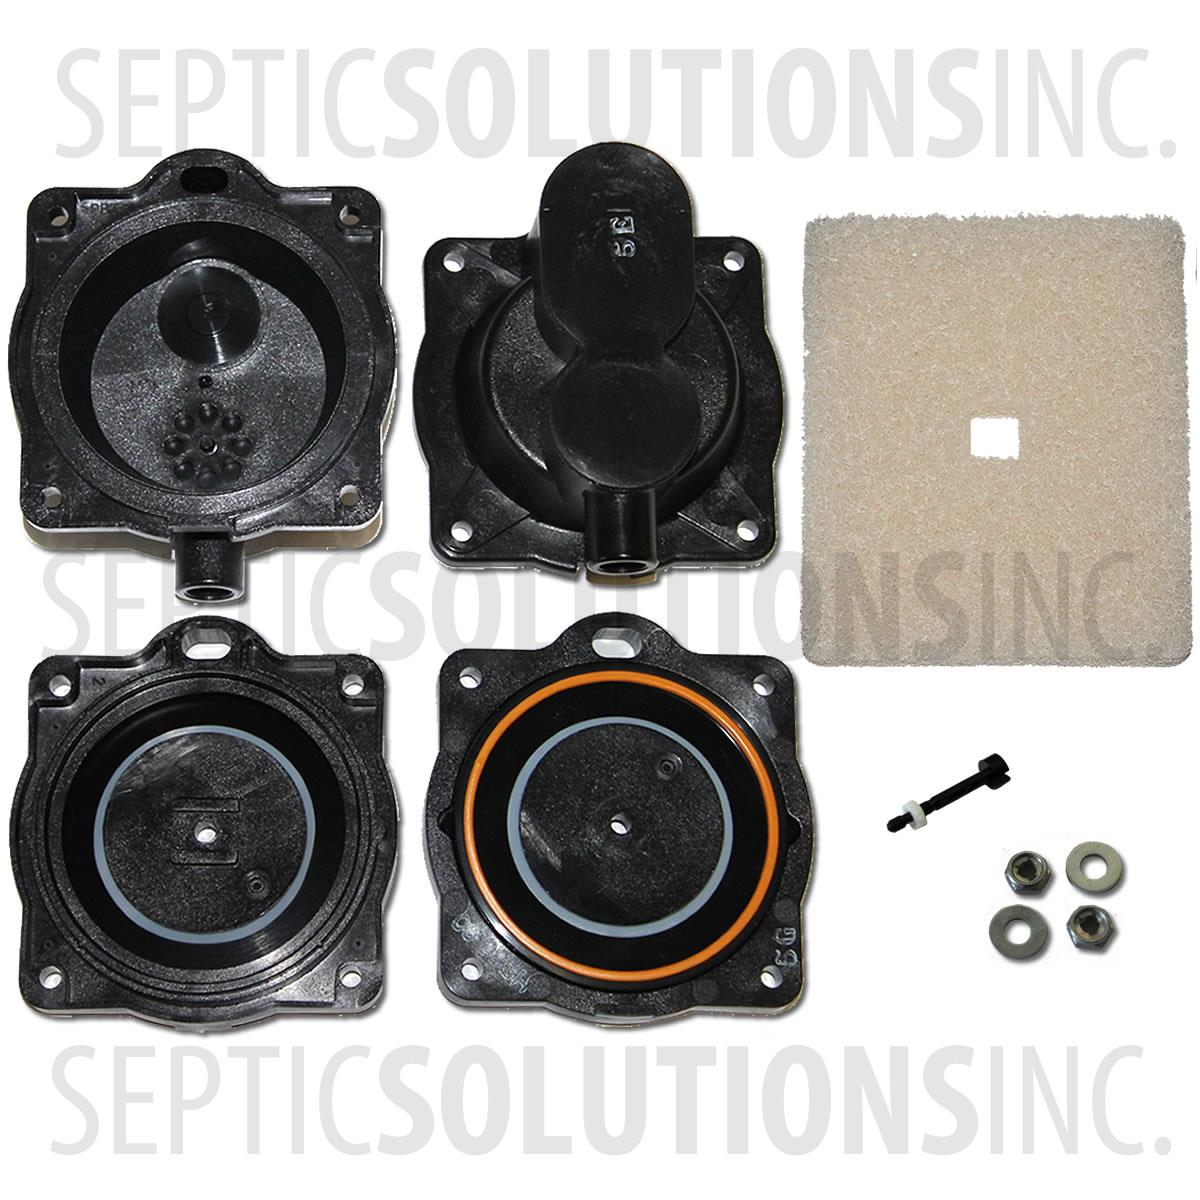 80PC000042_1?w=270 clearstream aerobic septic system air pumps and repair parts  at cos-gaming.co